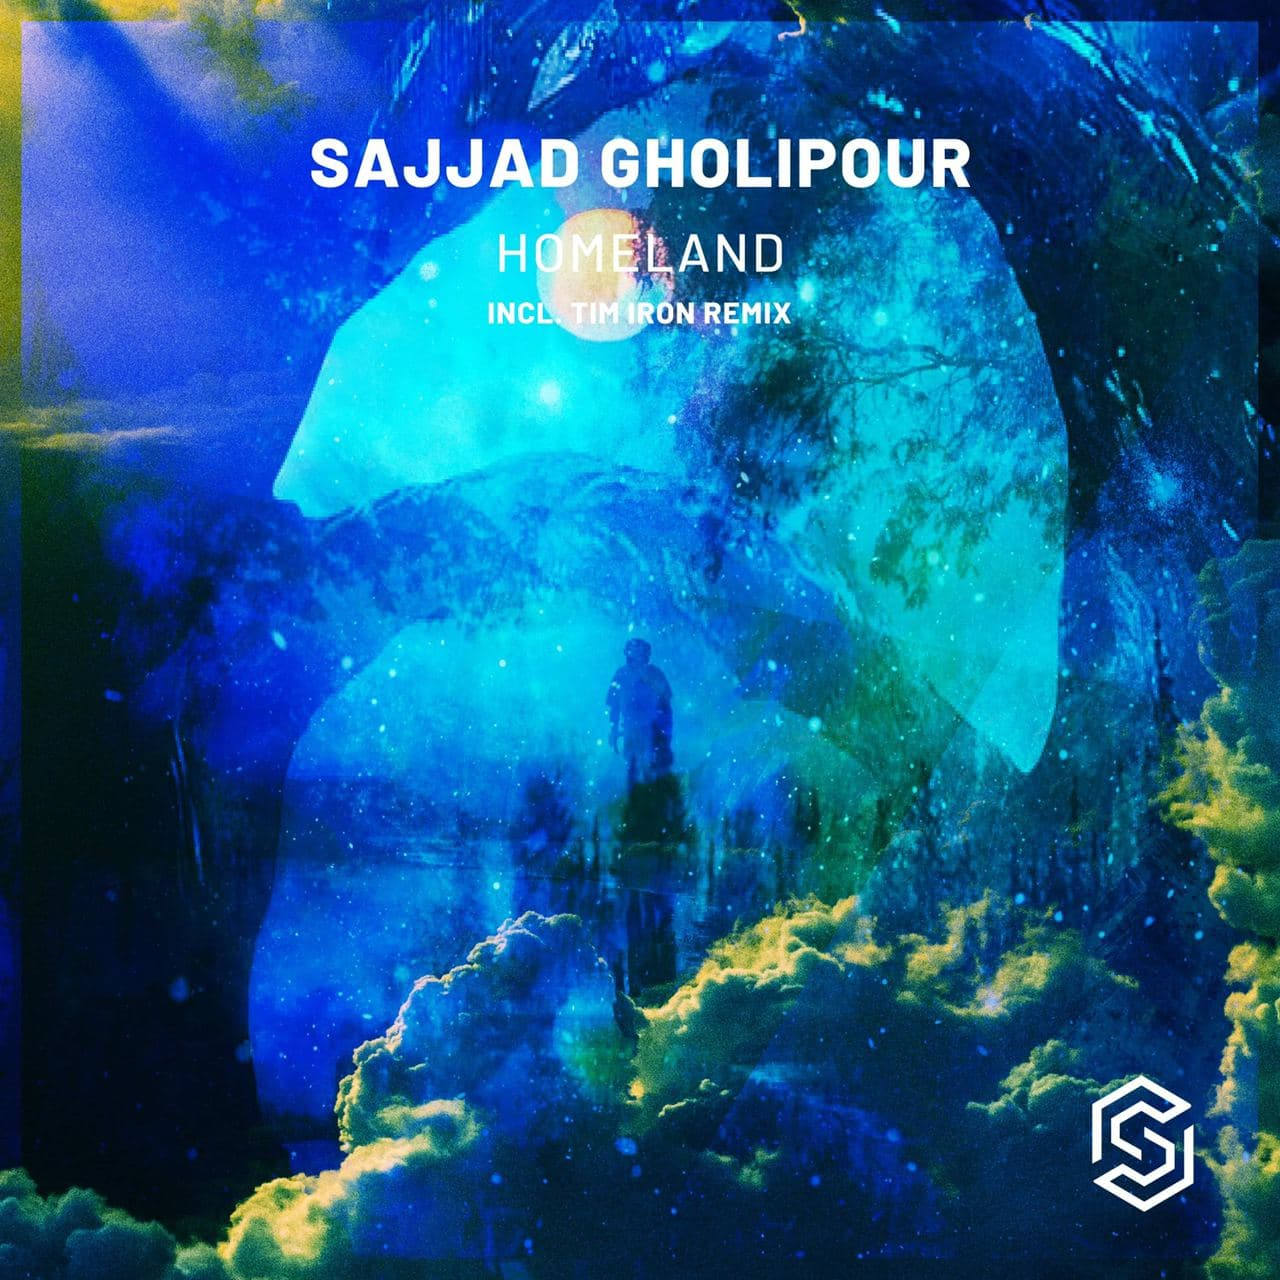 Sajjad Gholipour - Homeland (Original Mix)